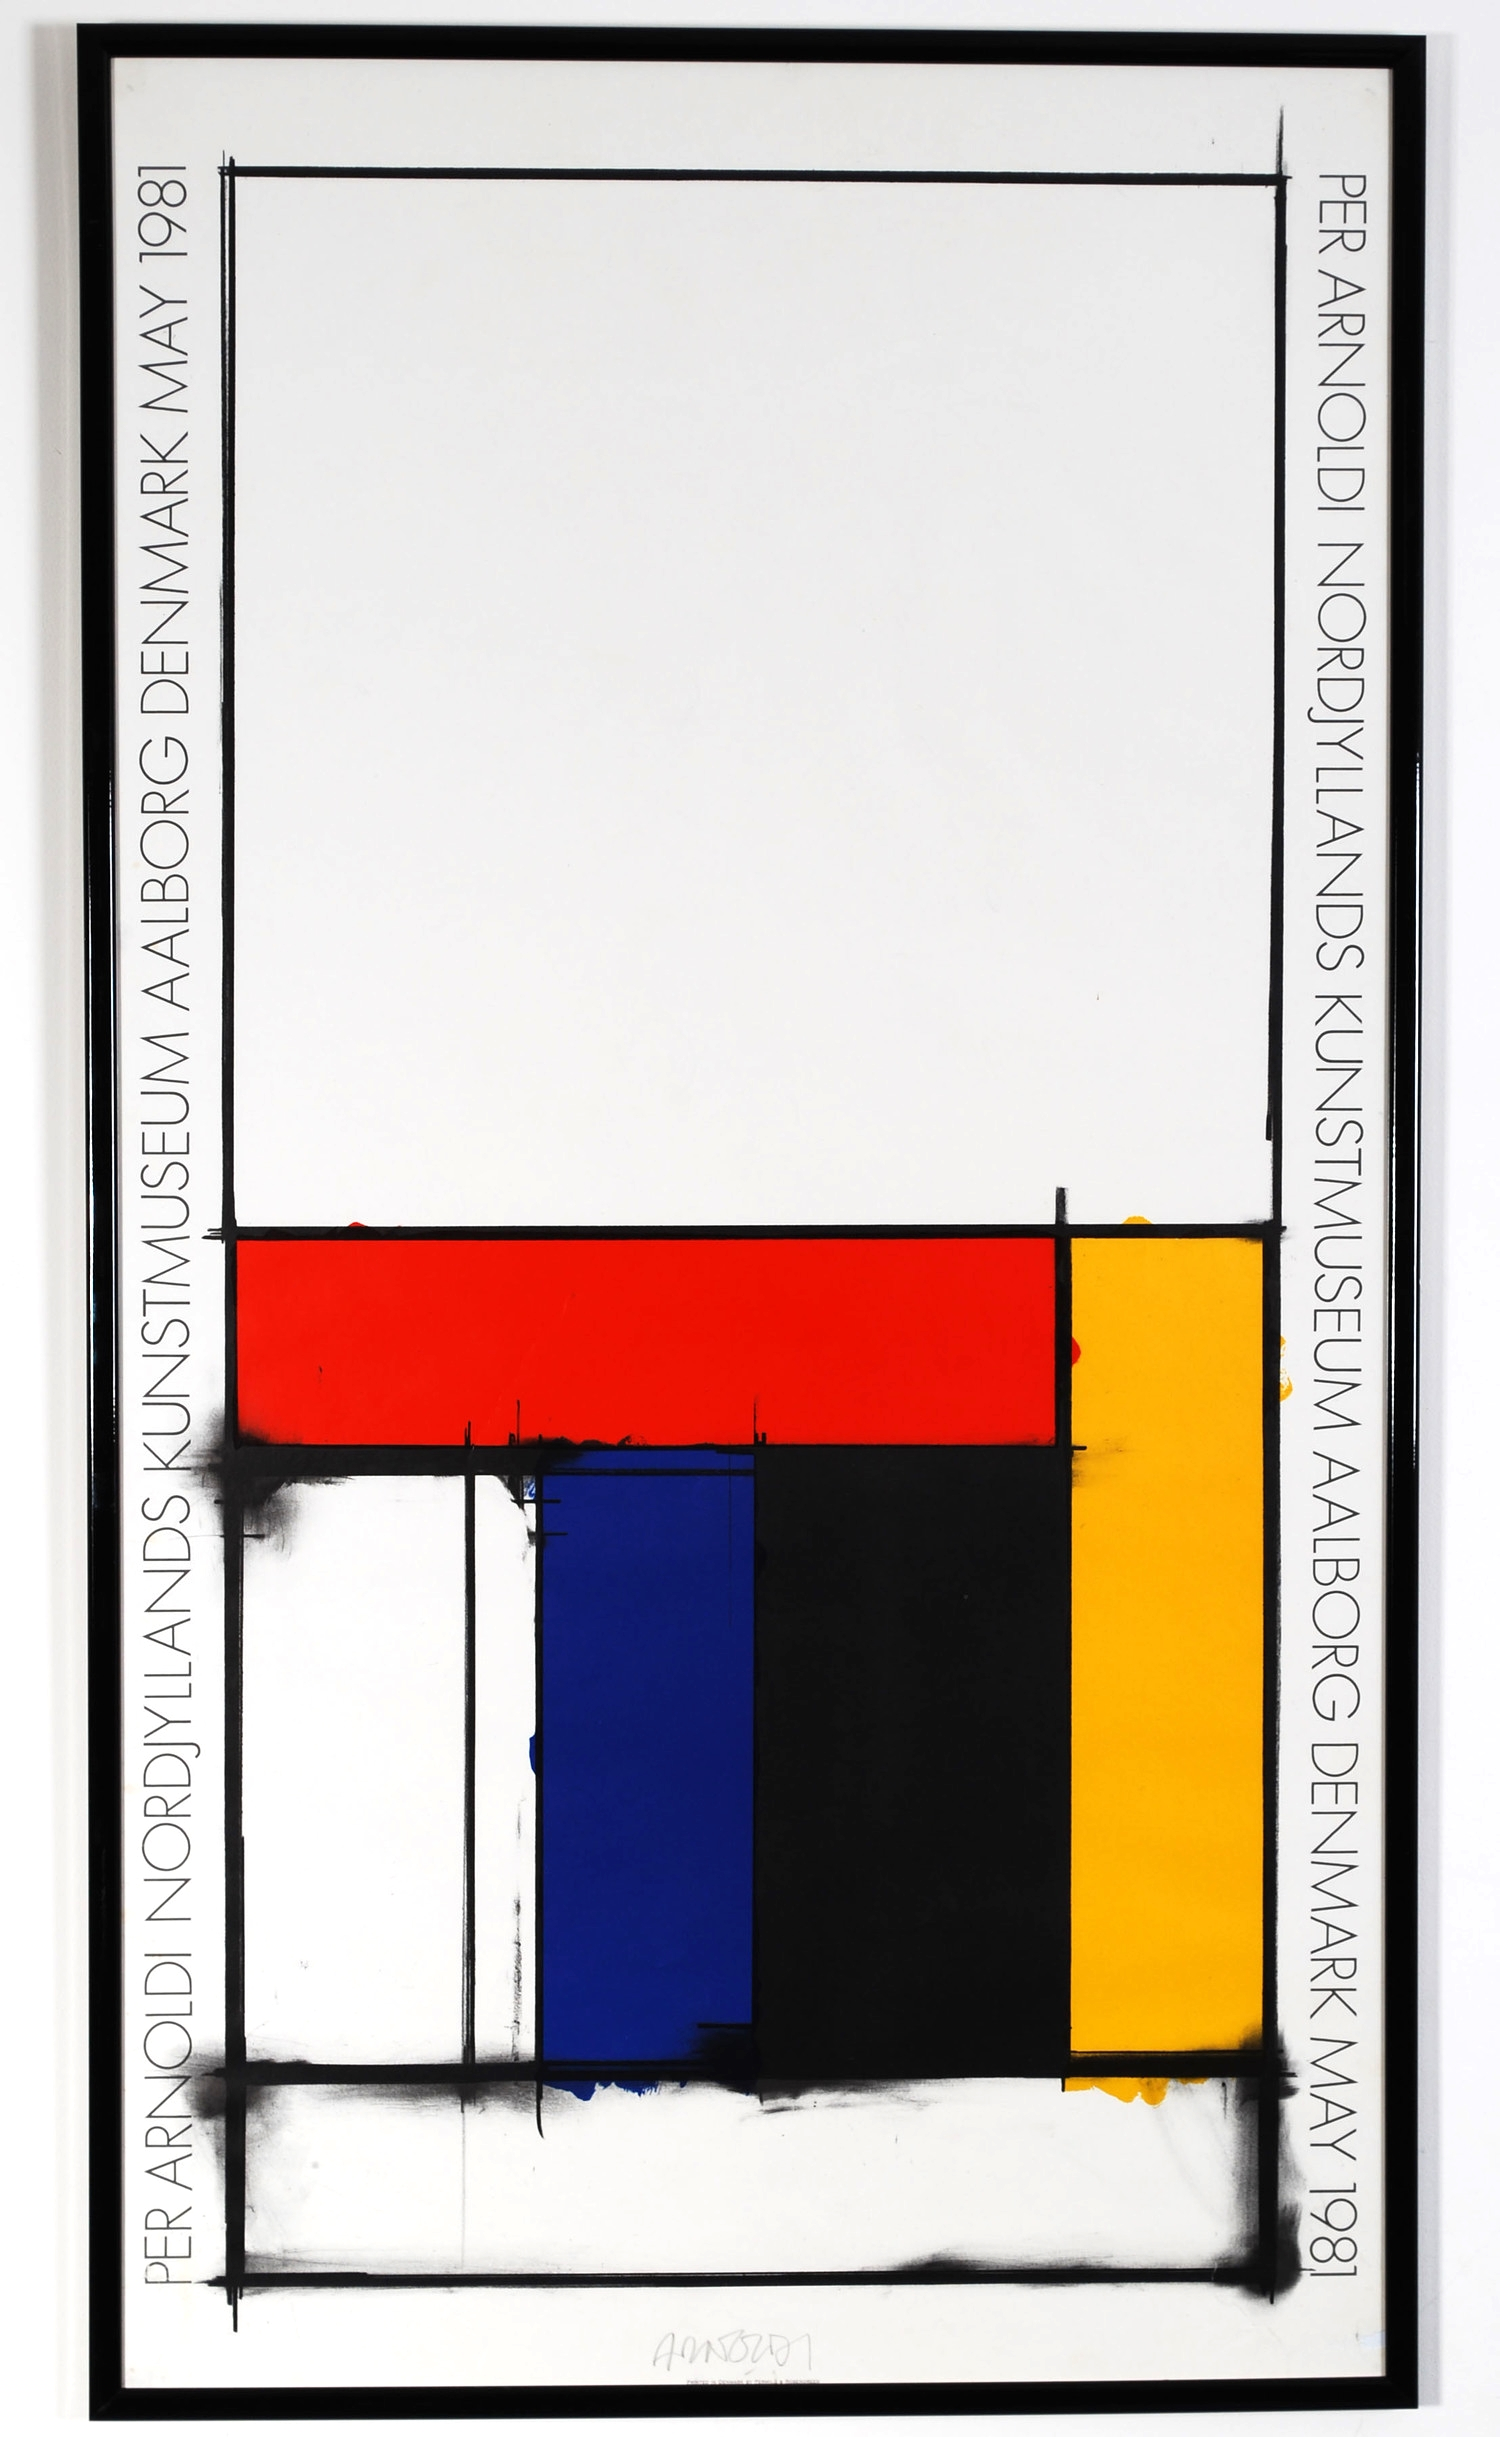 Original poster Per Arnoldi - Nordjyllands Kunstmuseum - Aalborg Denmark - 1981 (signed by author) -  AVAILABLE